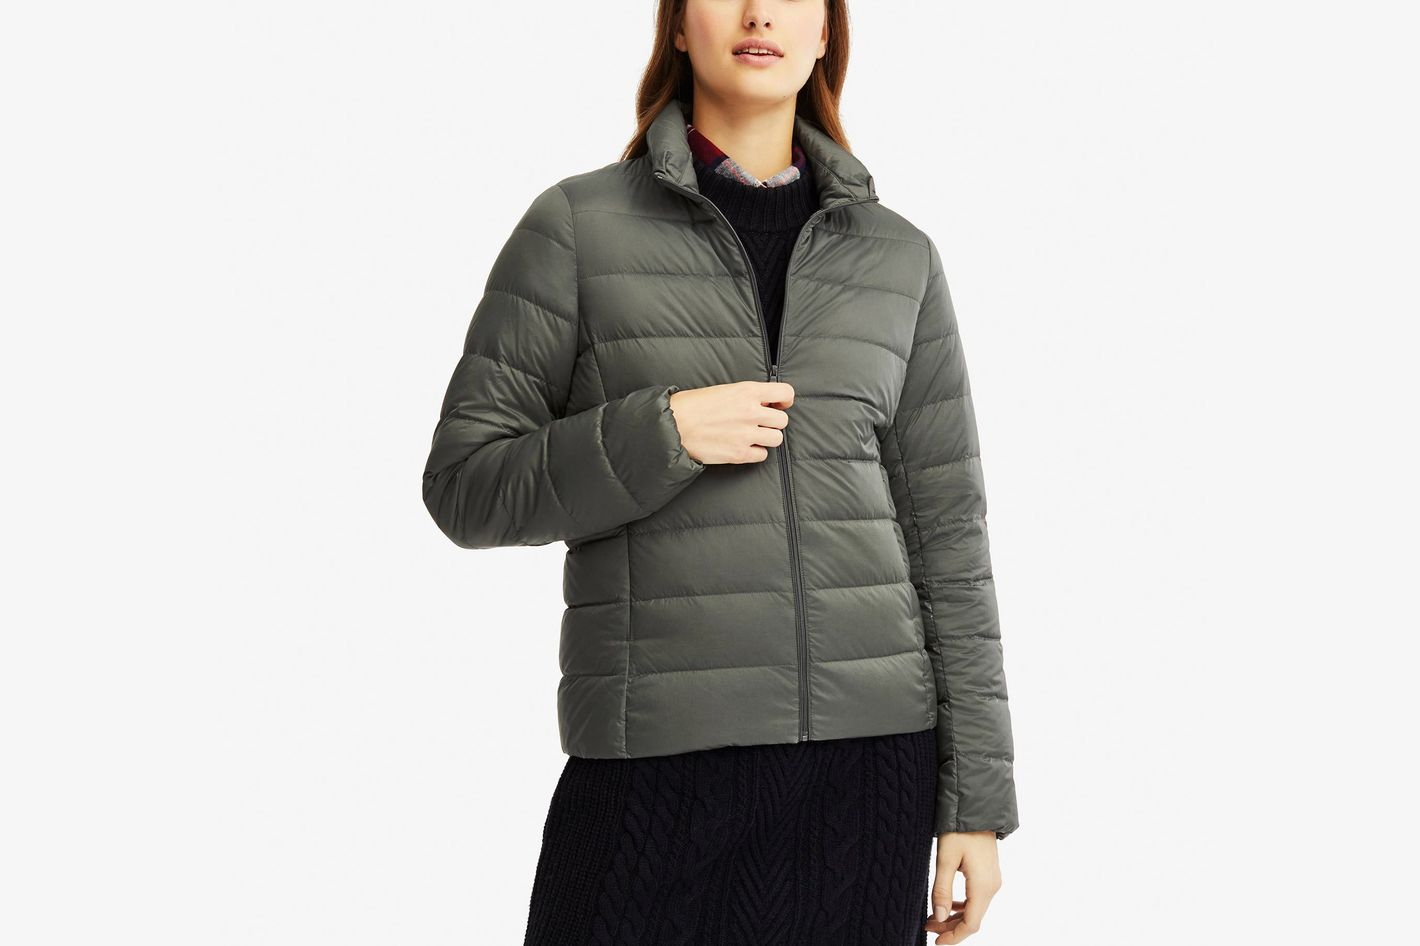 Uniqlo Women Ultra Light Down Vest And Jackets On Sale 2018